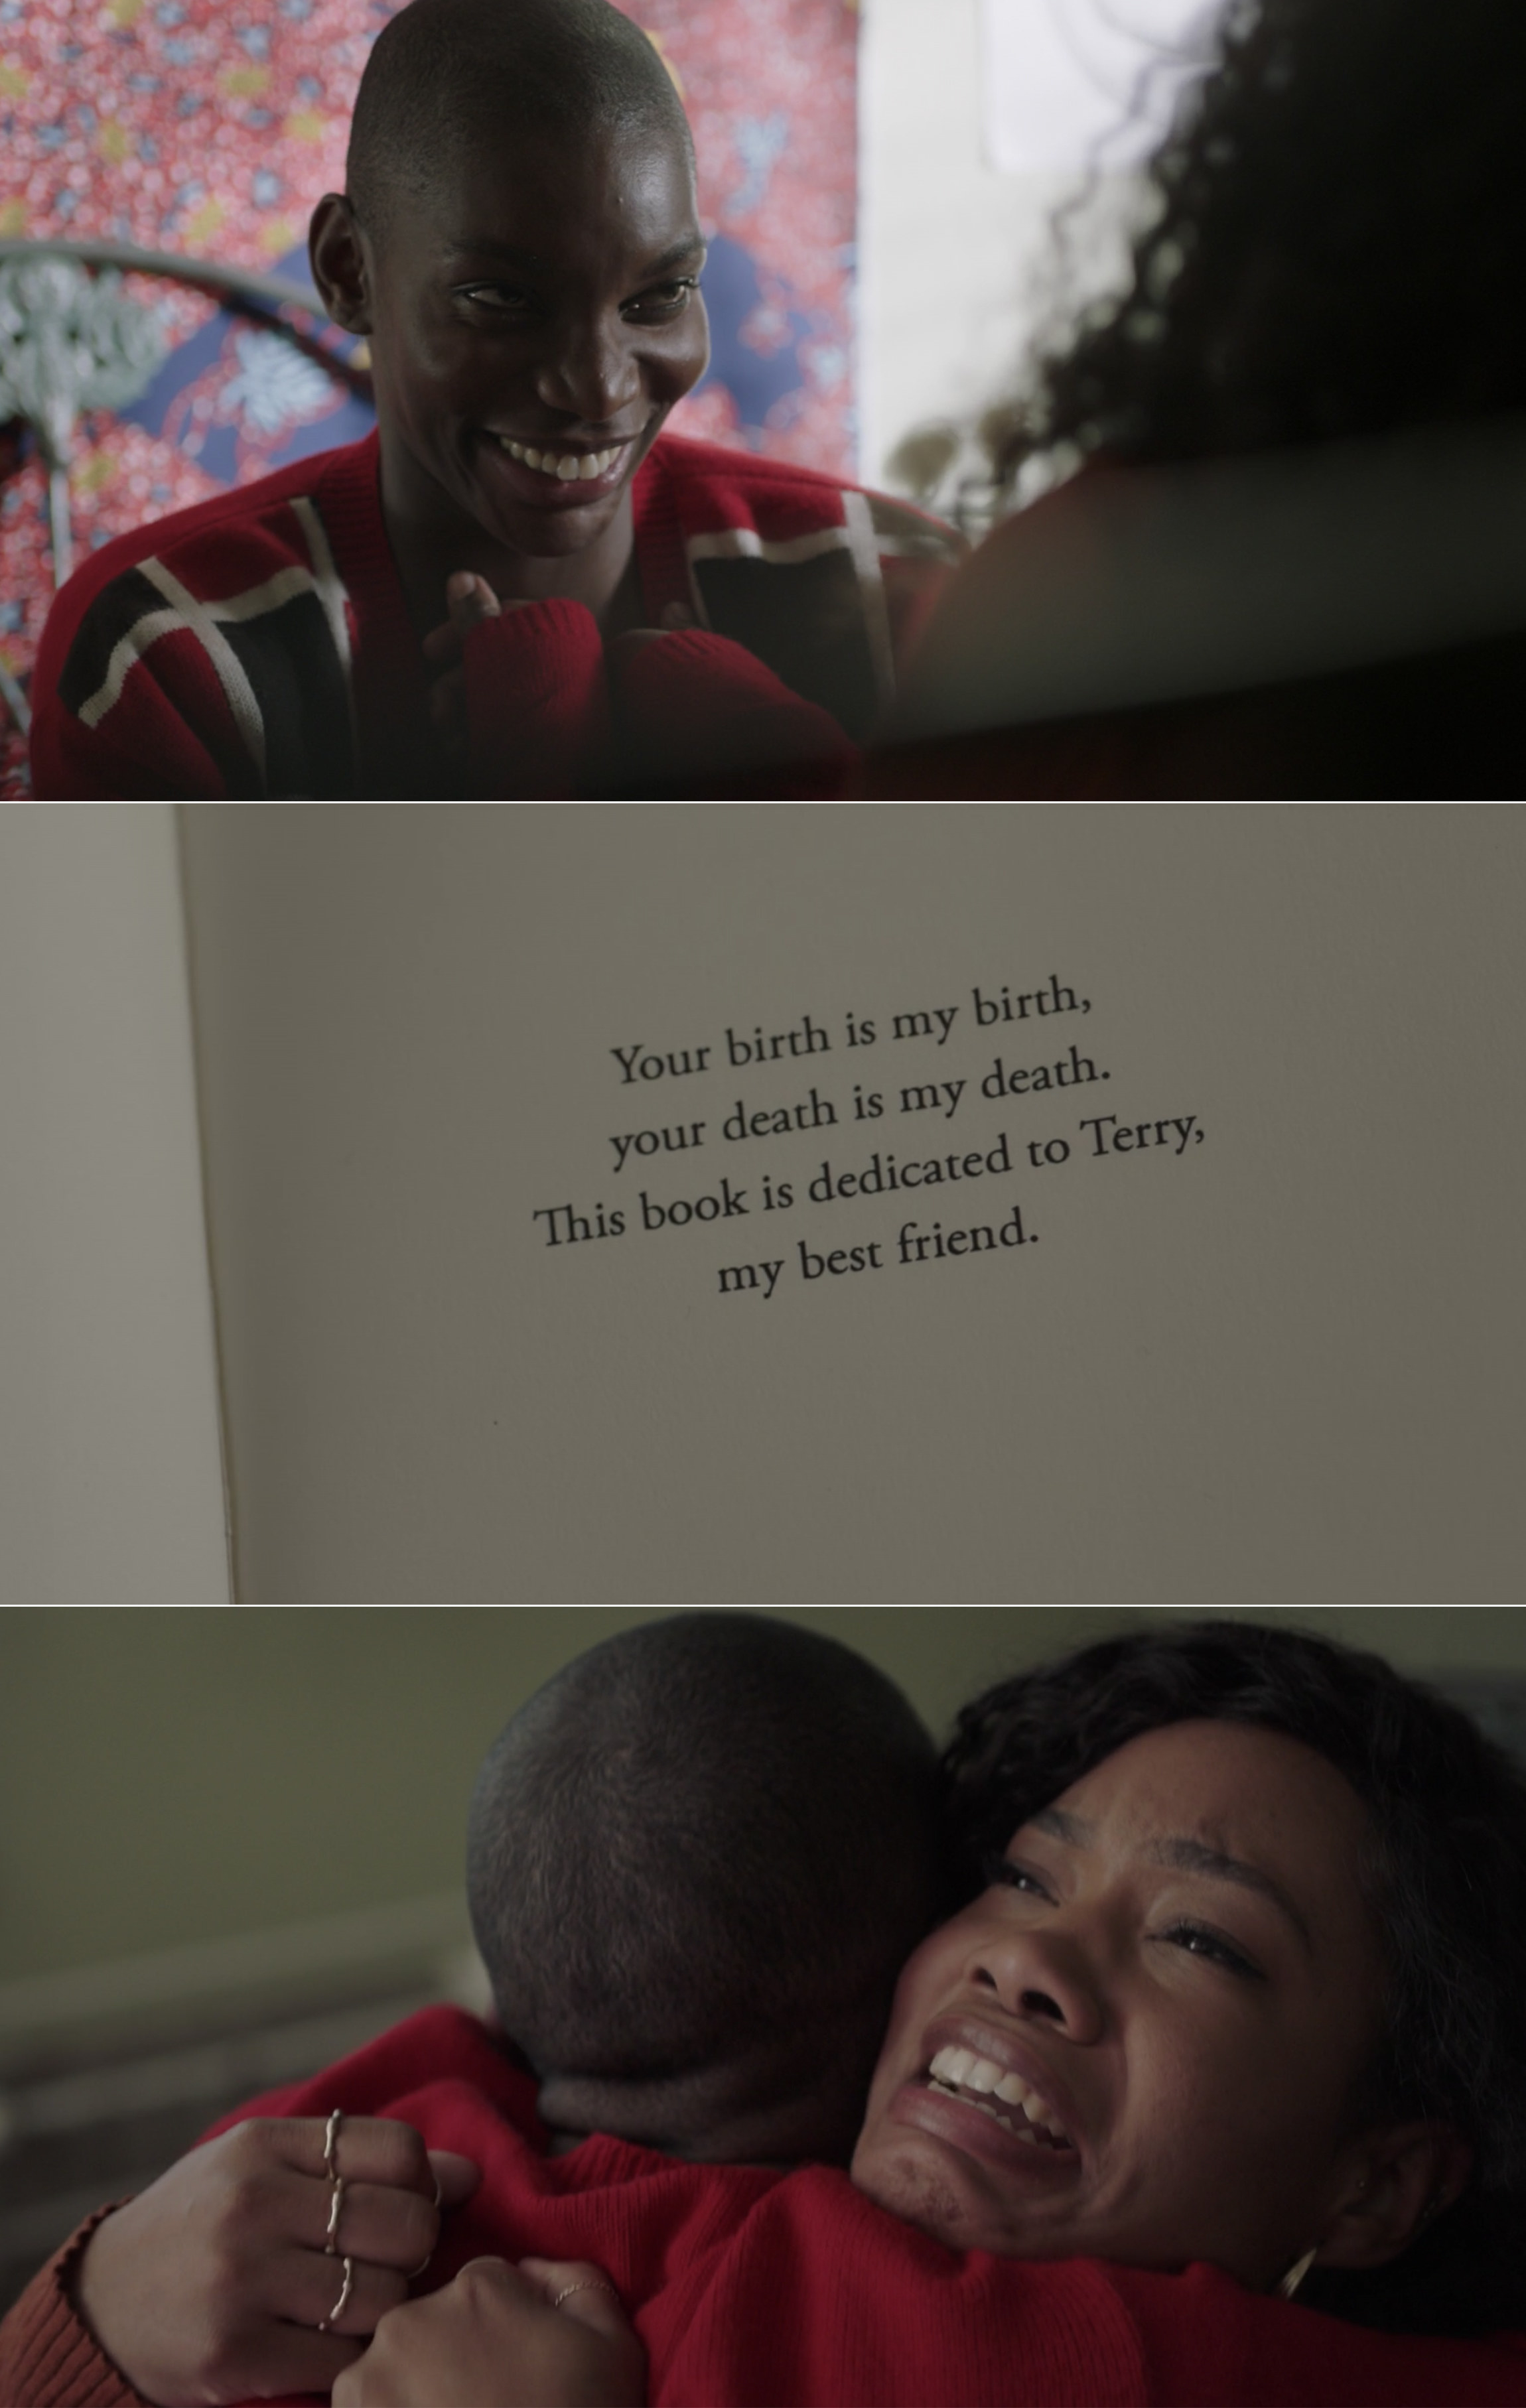 Terry reading the dedication in the book and hugging Arabella